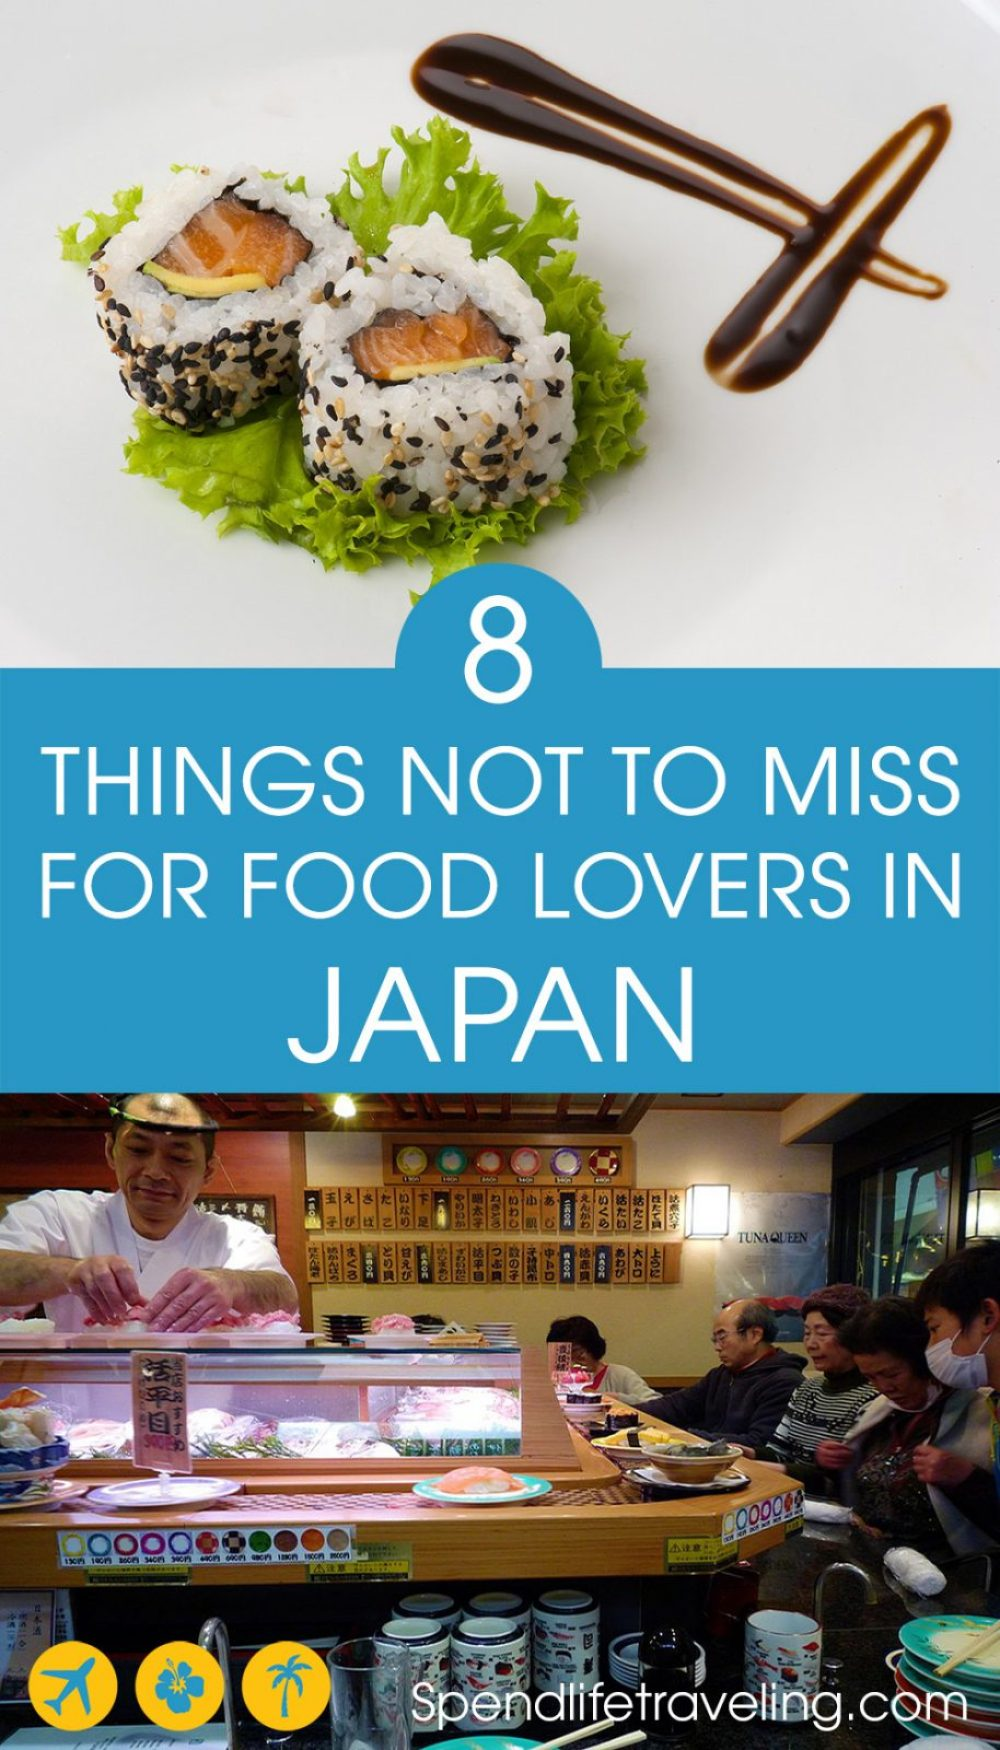 Tips for food lovers traveling to Japan. If you love food, Japan is a great place to visit. Check out what not to miss when it comes to culinary experiences in #Japan. #Japanesefood #foodtravel #foodlovers